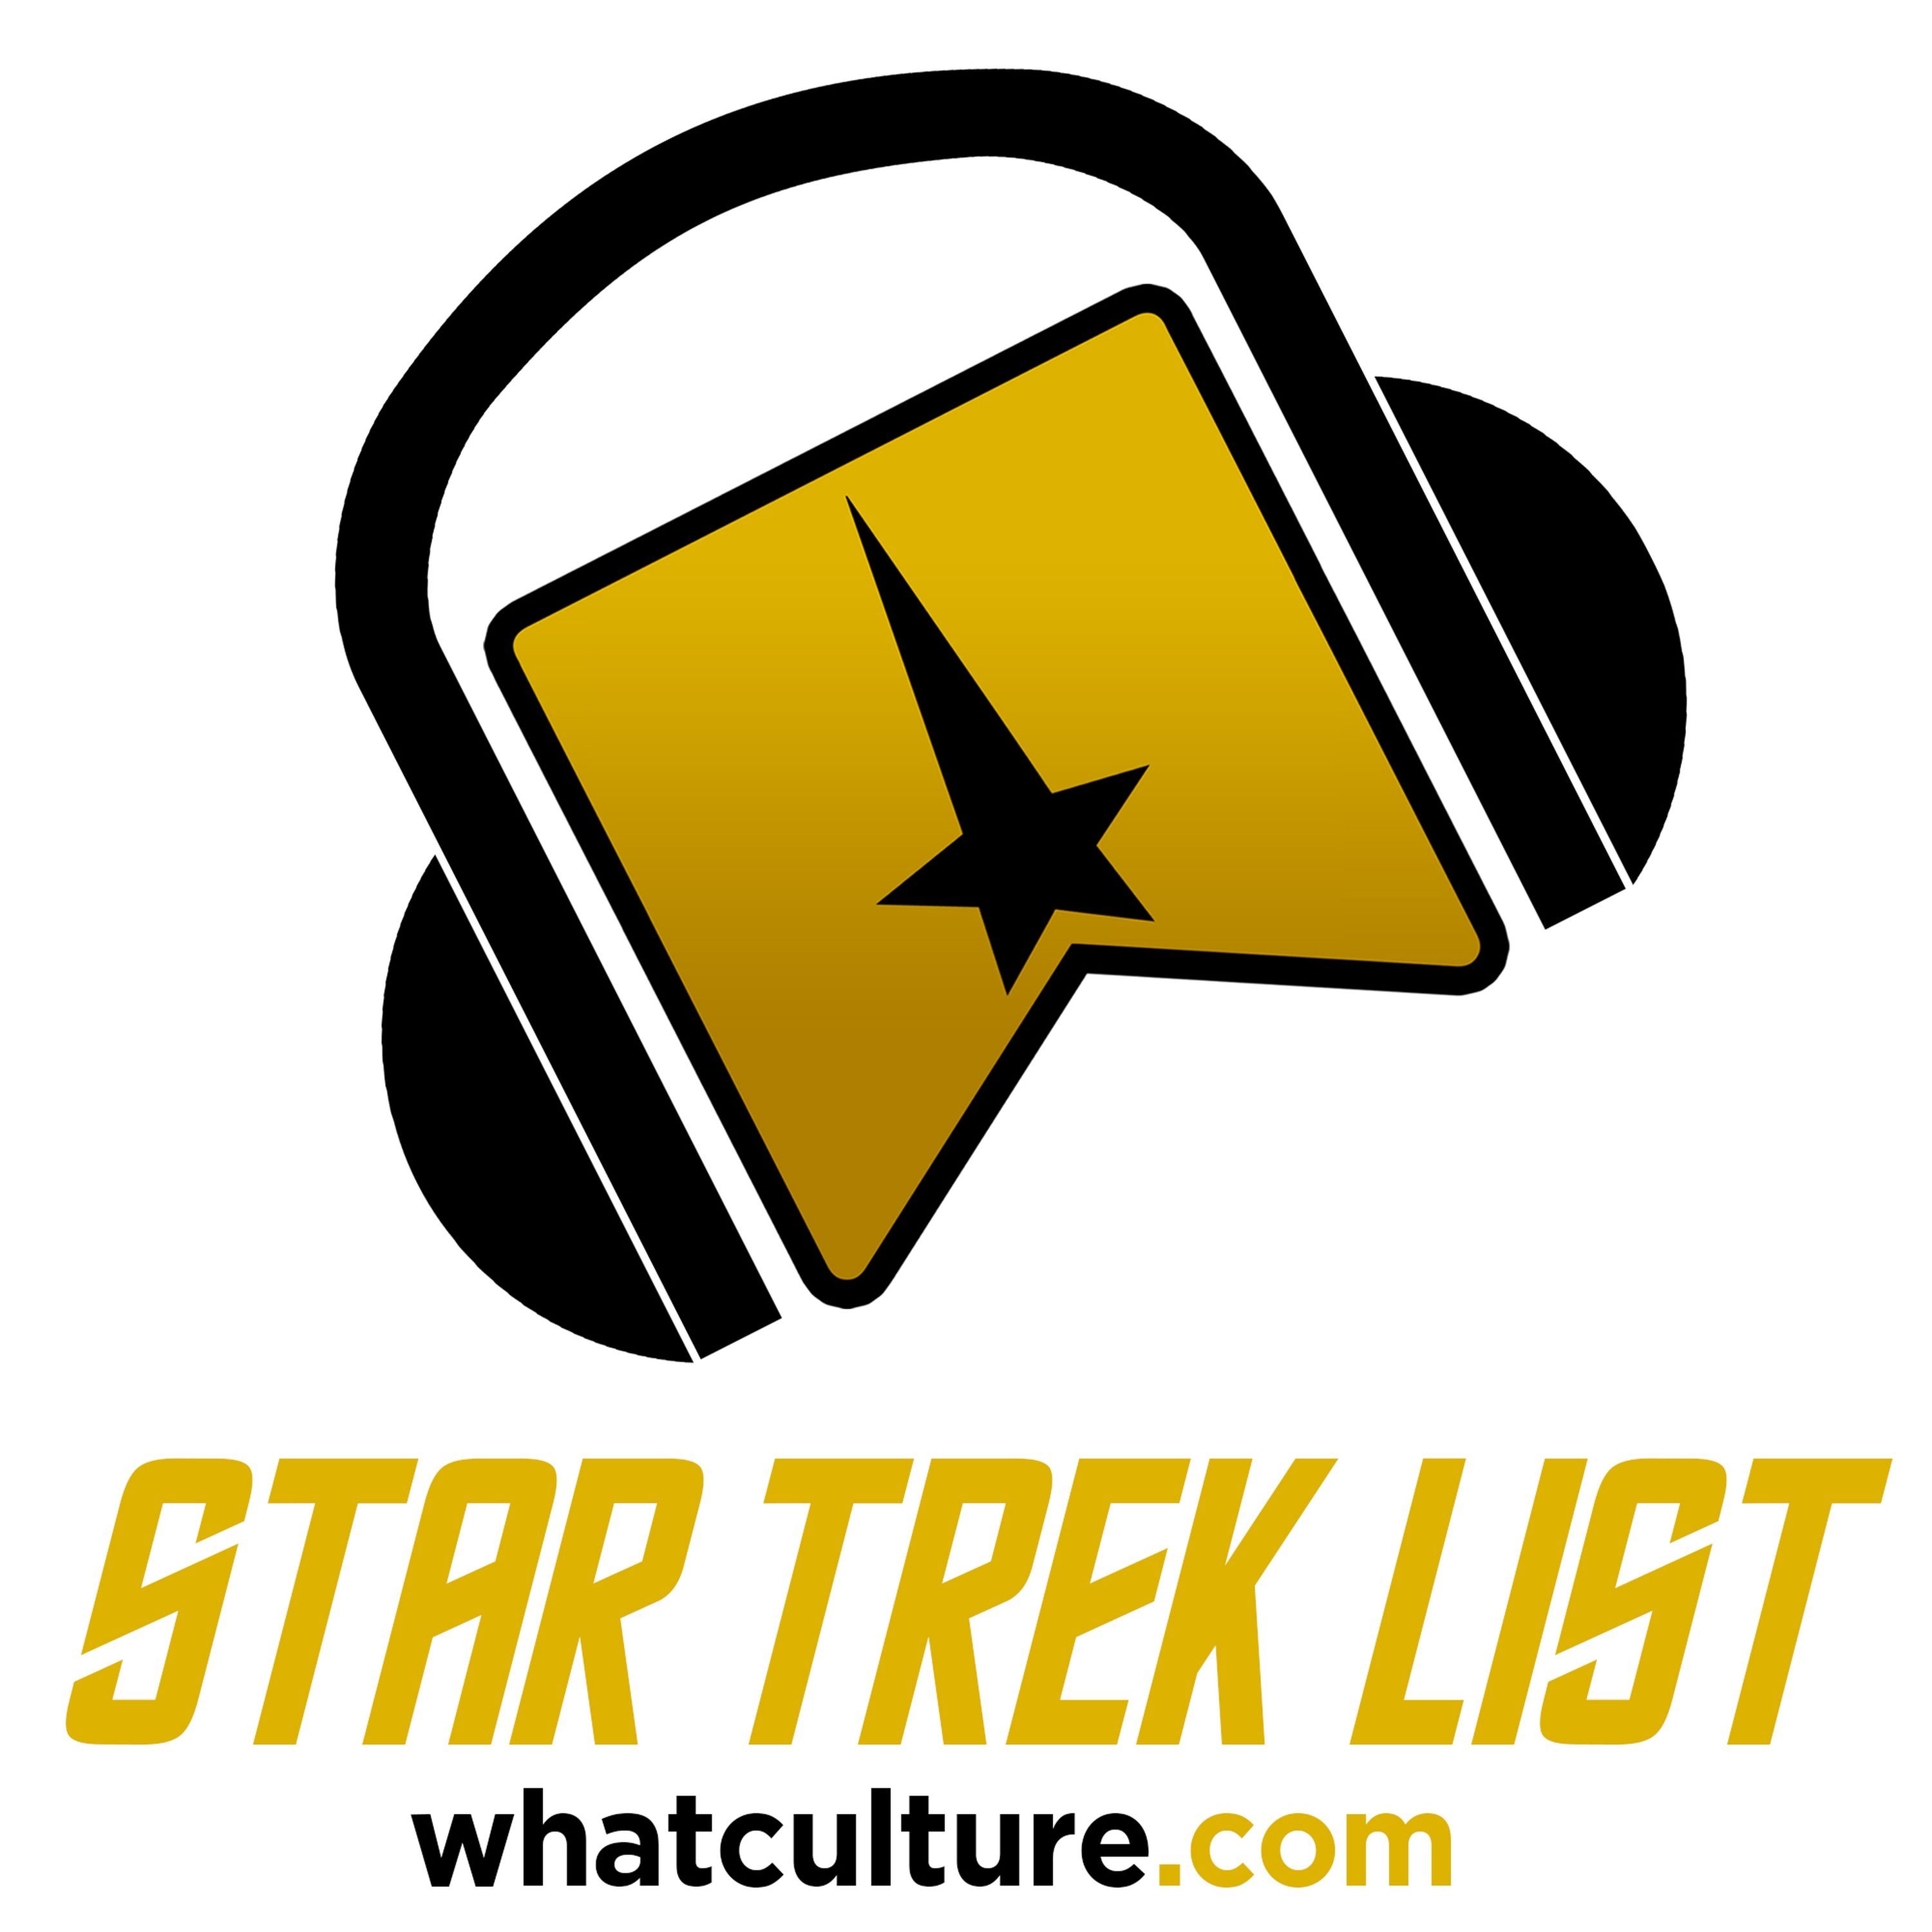 10 Star Trek: TNG Facts You Probably Didn't Know - Geordi La Forge's Painful Visor! Costume Troubles! Stephen Hawking & Star Trek! The Borg Were Almost Bugs?!